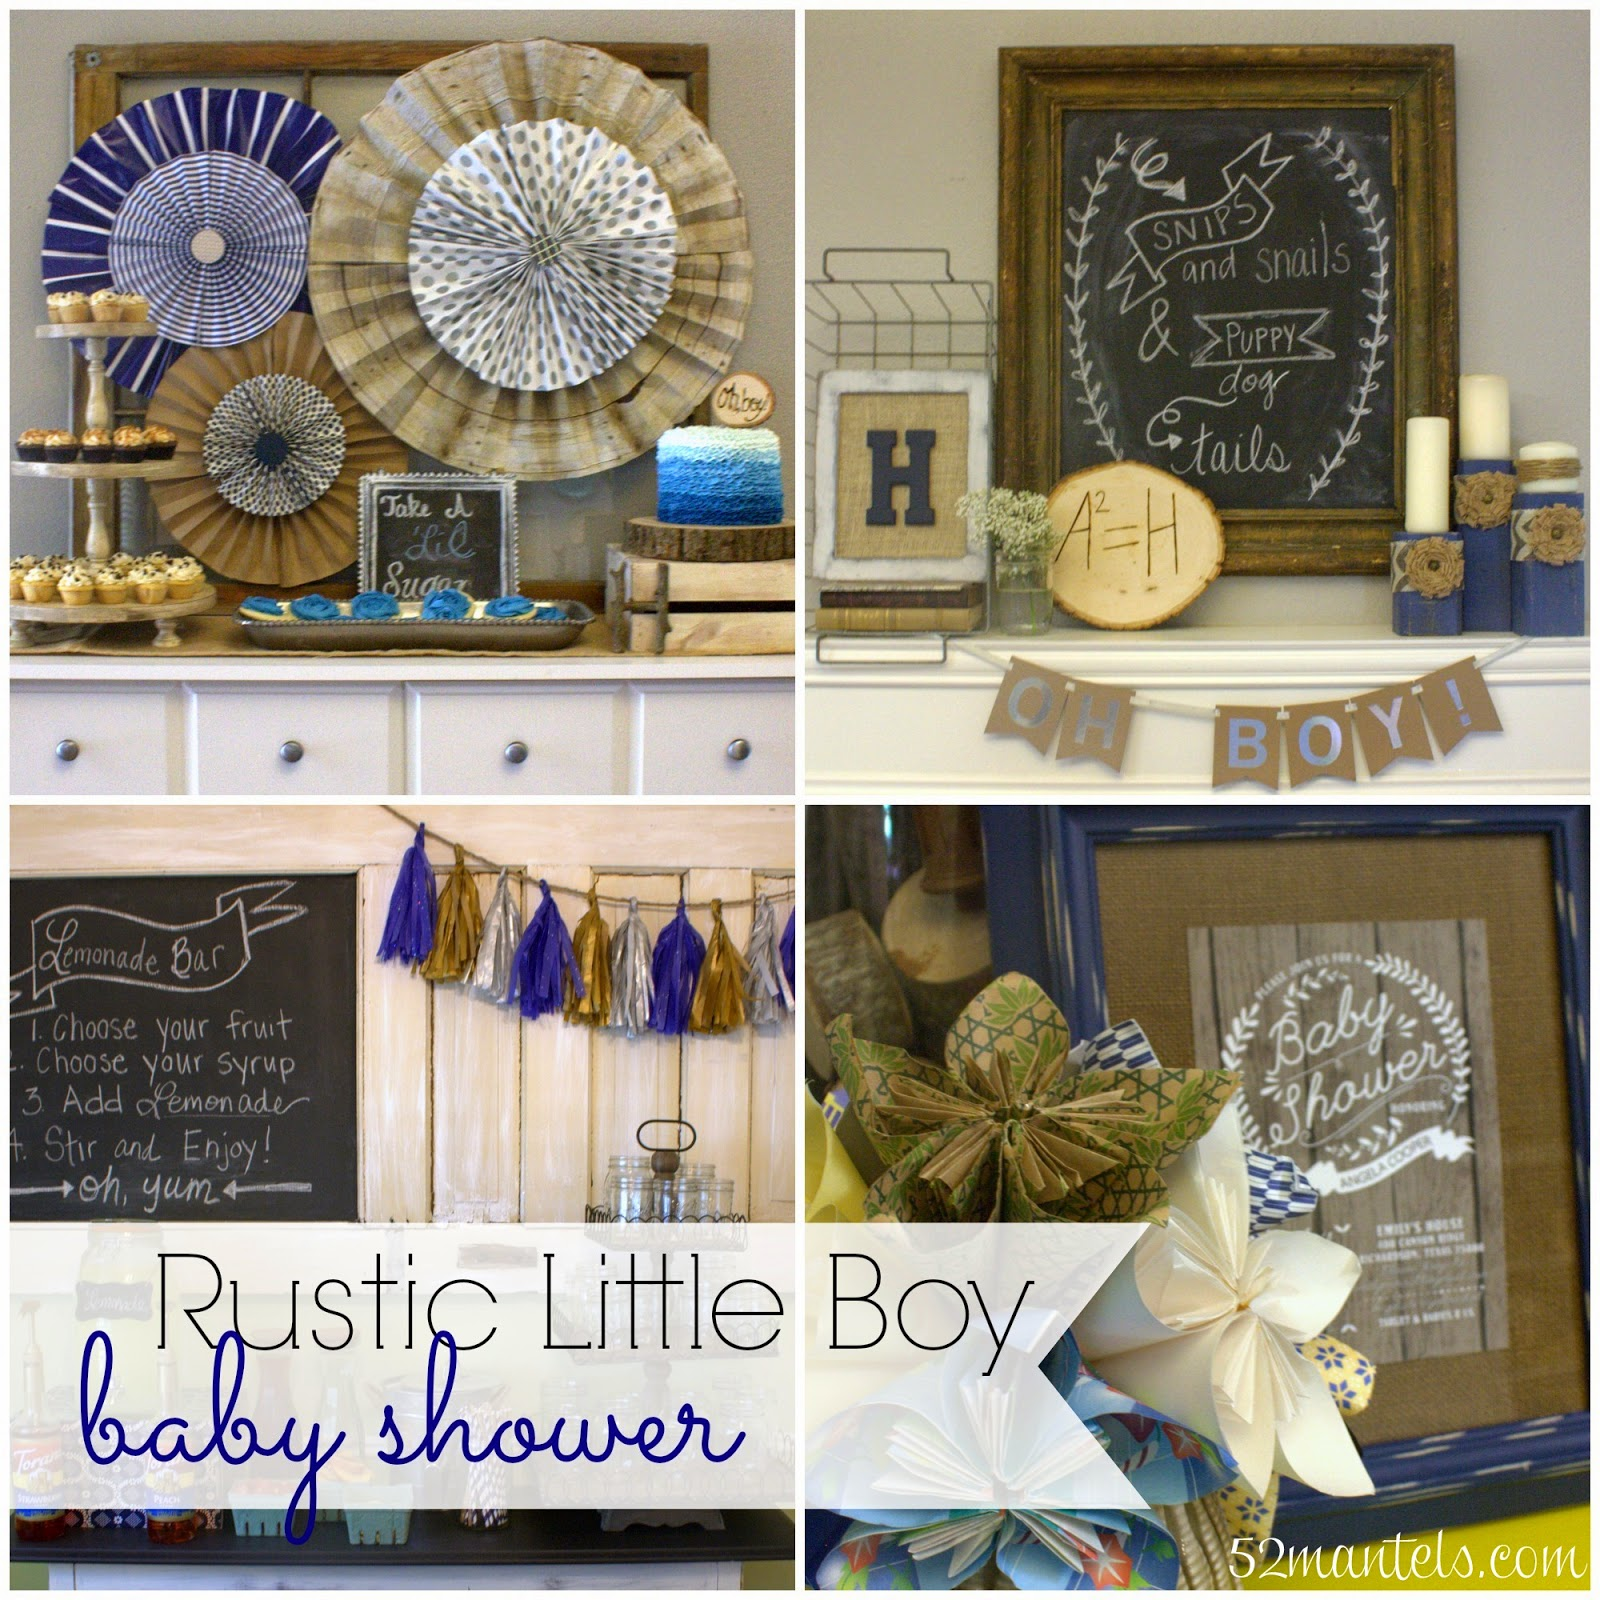 several weeks ago i hosted a rustic little boy baby shower for one of